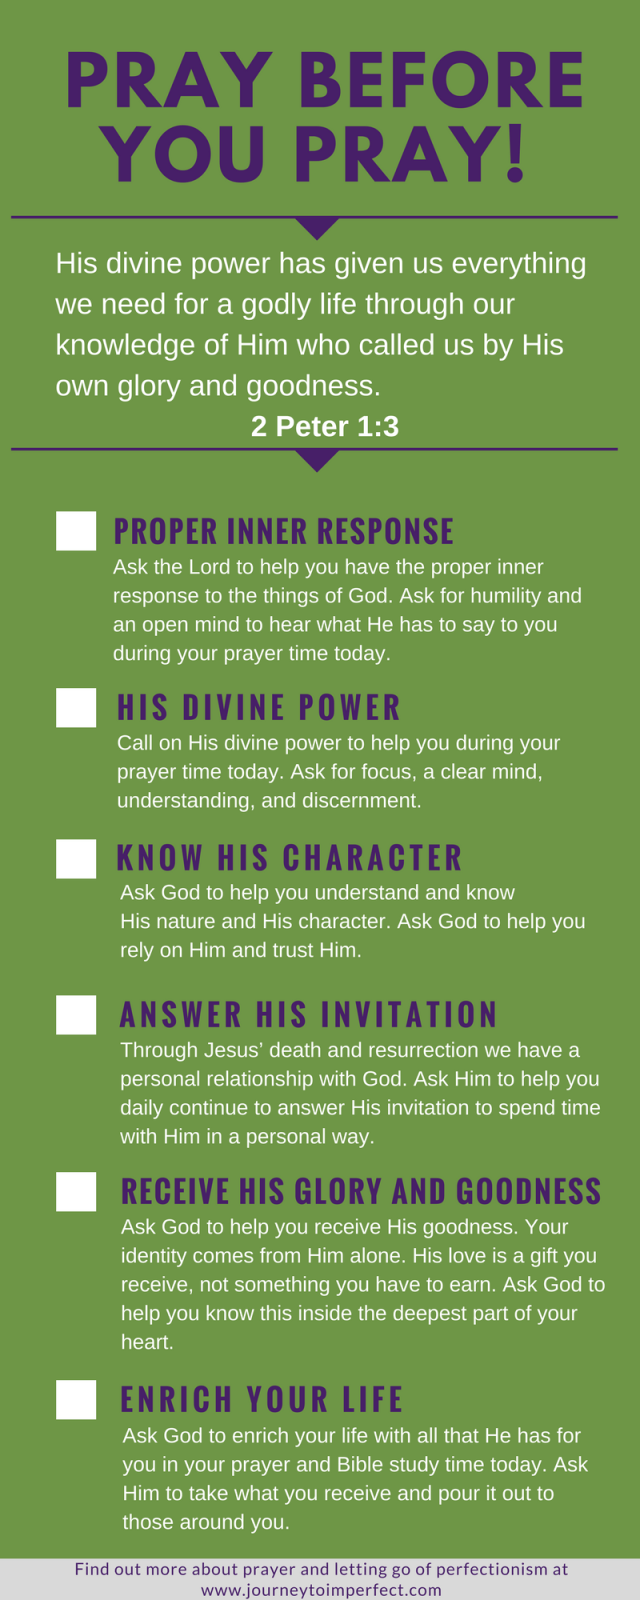 God will equip us for living a life that is pleasing to Him. This includes equipping us for our prayer life! Empower your prayer life by praying over these 6 areas before you go into your prayer time. Based on a Greek word study of 2 Peter 1:3! Click to read more!